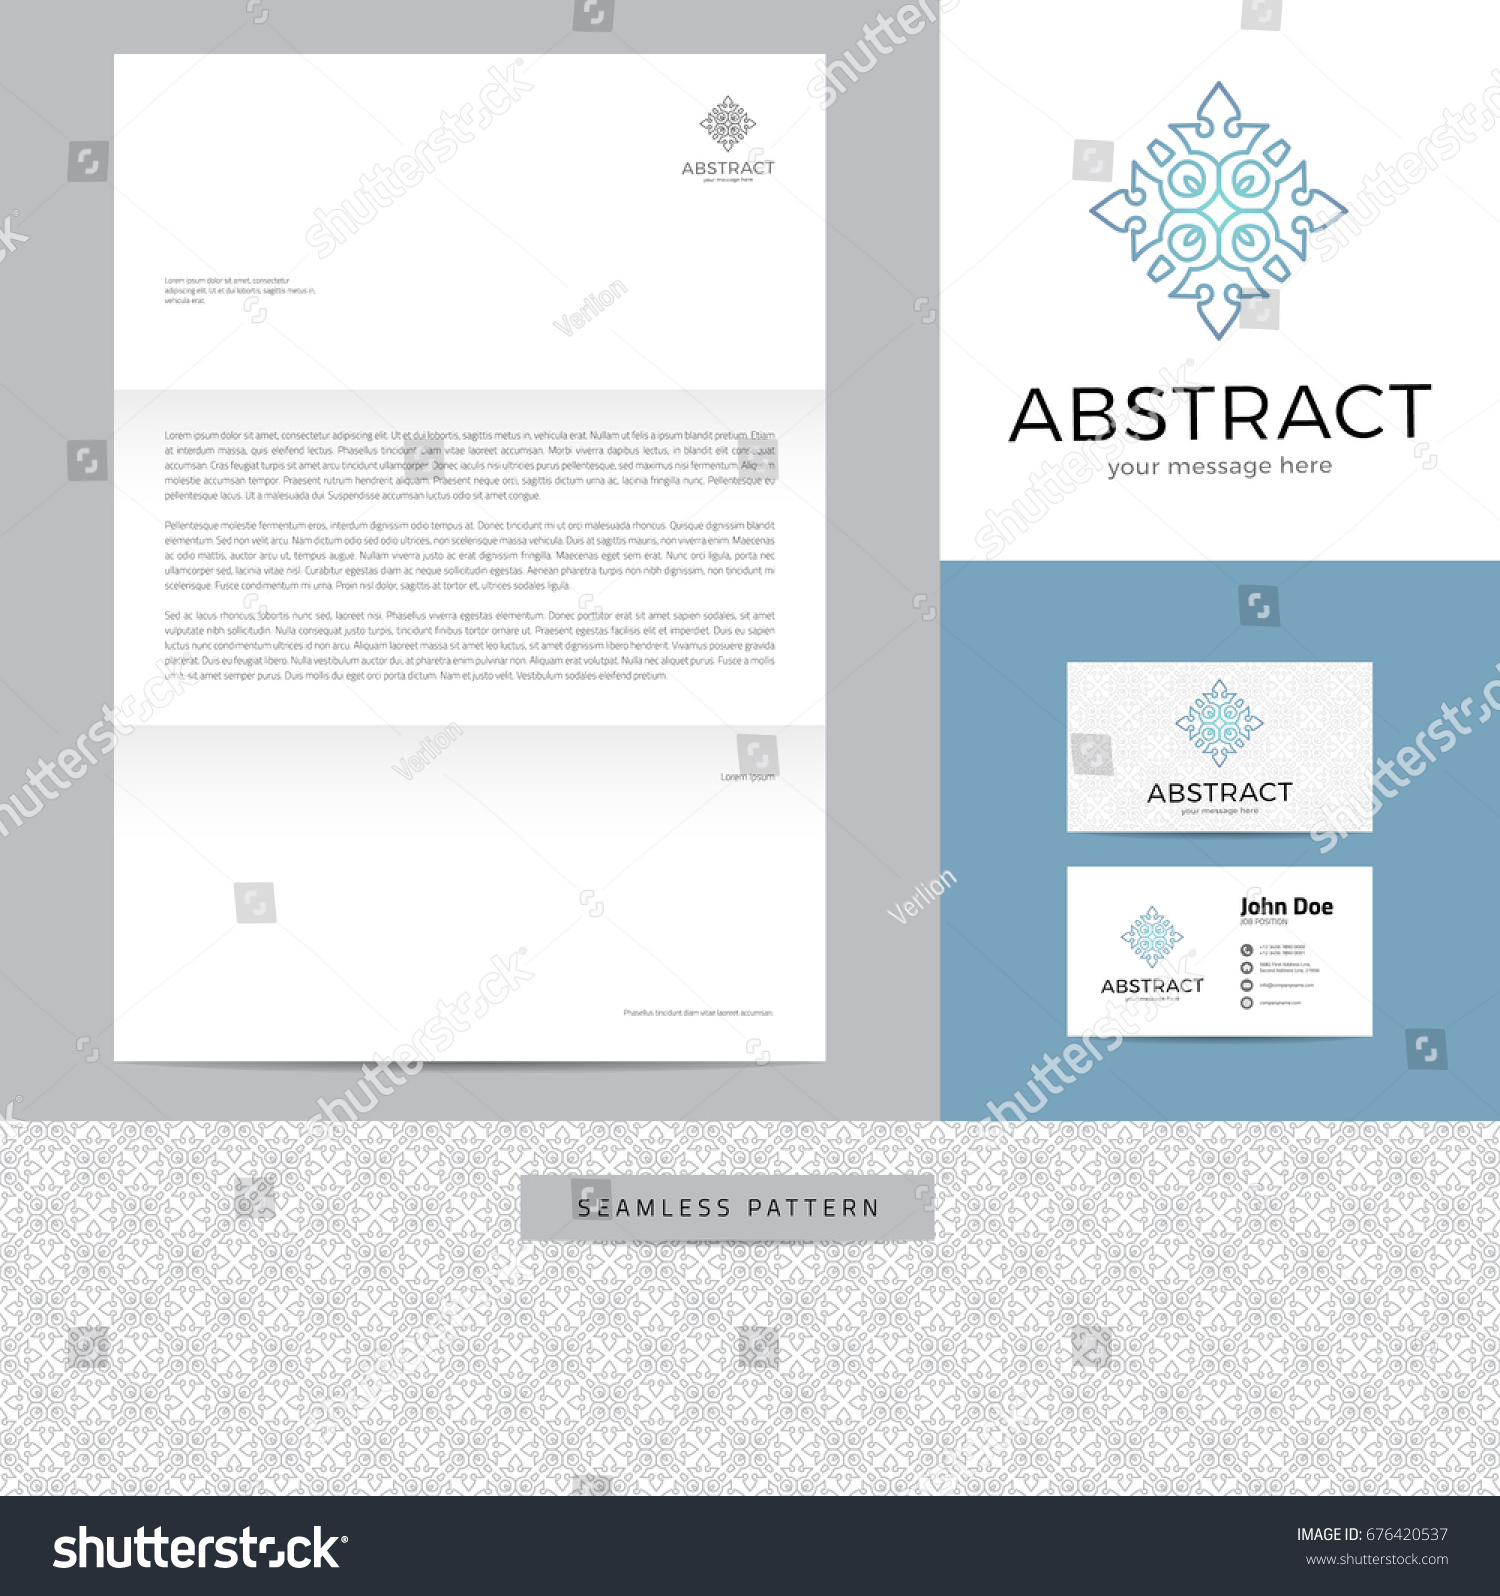 Letterhead and business cards choice image free business cards letterhead business cards images free business cards letterhead and business cards image collections free business cards magicingreecefo Image collections